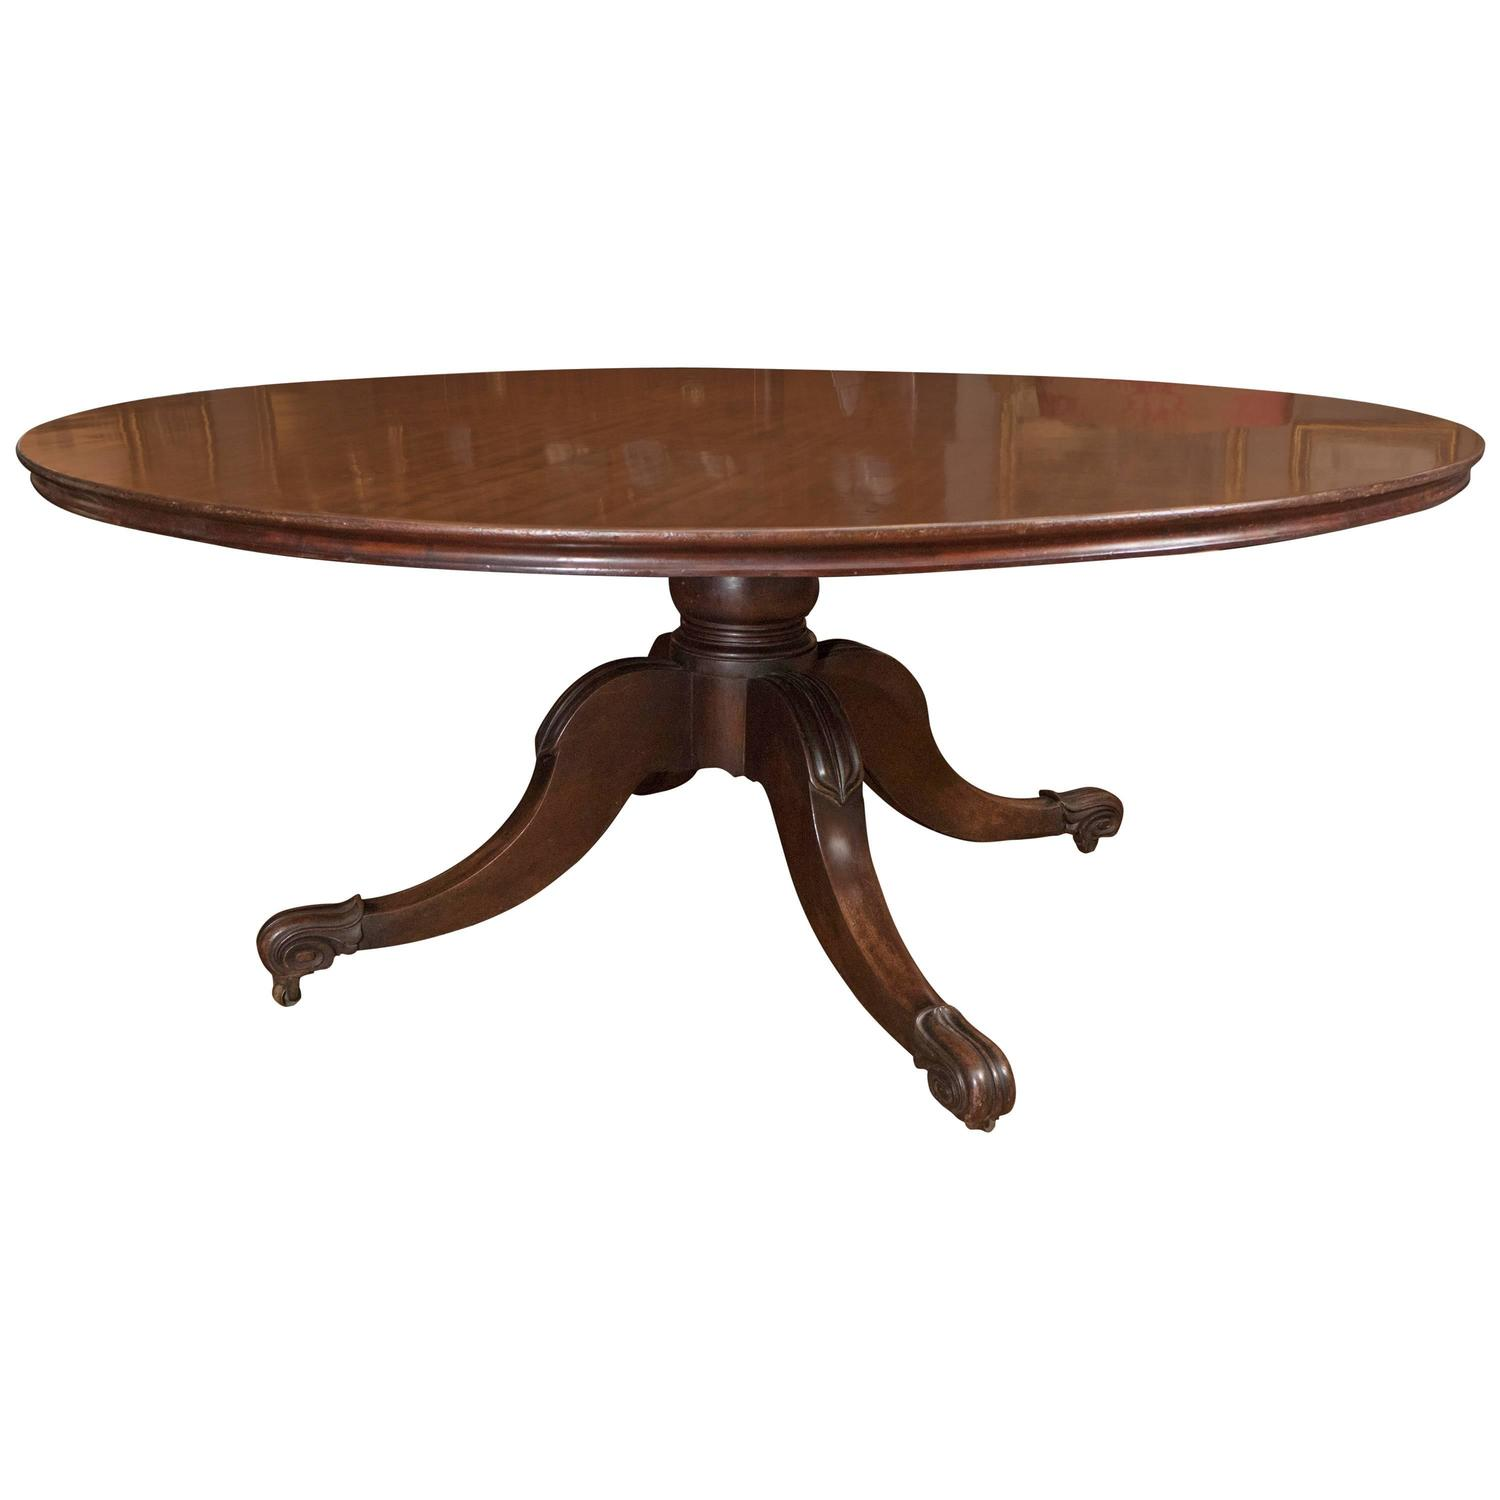 Six foot circular mahogany dining table by mack williams for 5 foot dining room table